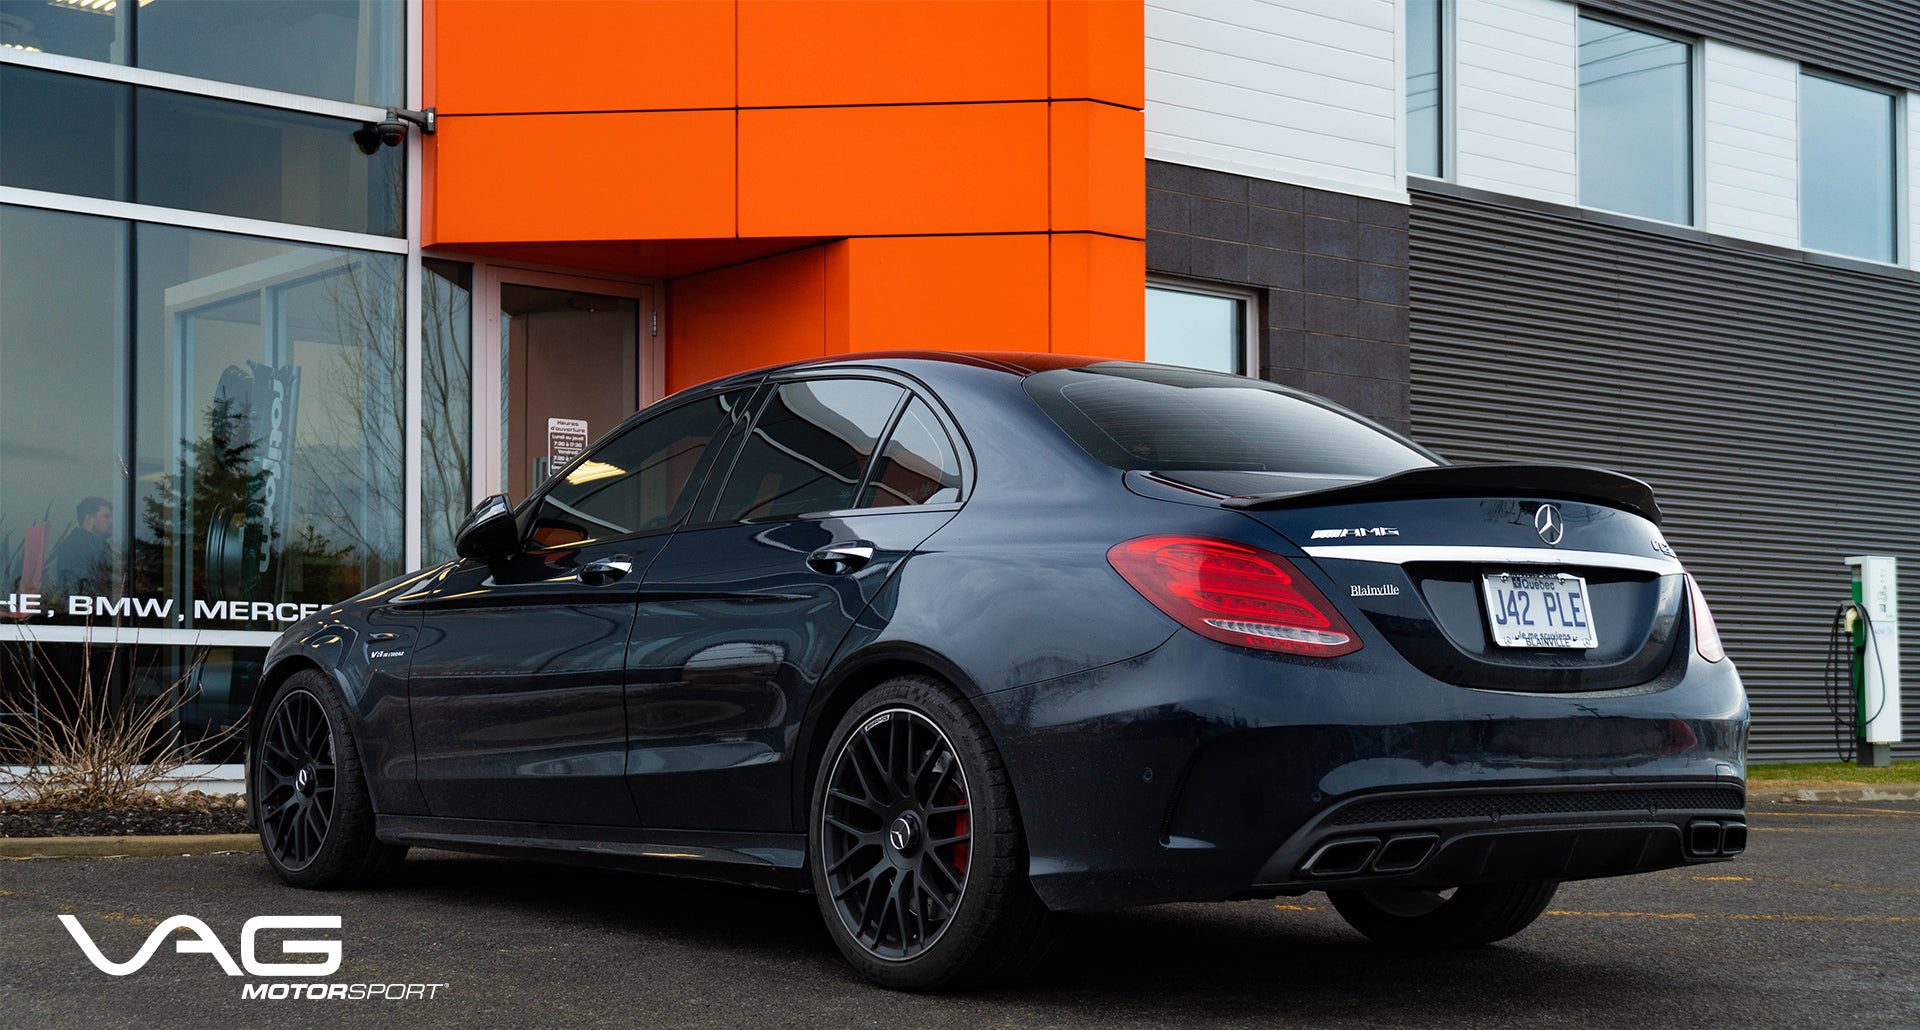 VAG Motorsport | Mercedes-AMG C63S Sedan x Yomato Carbon